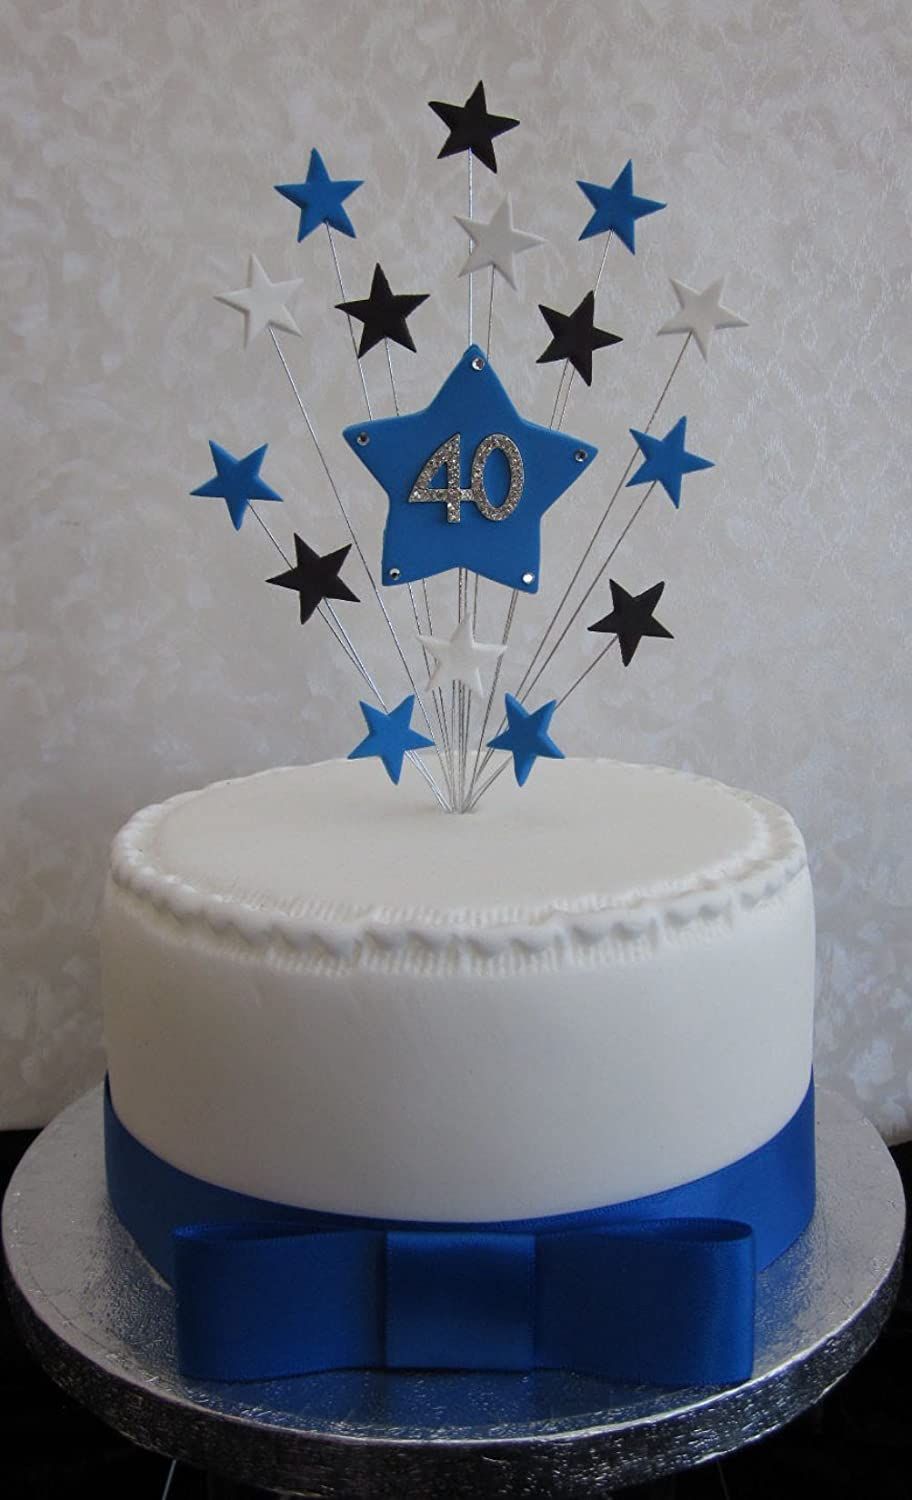 40th Birthday Cake Topper Blue Black And White Stars Suitable For